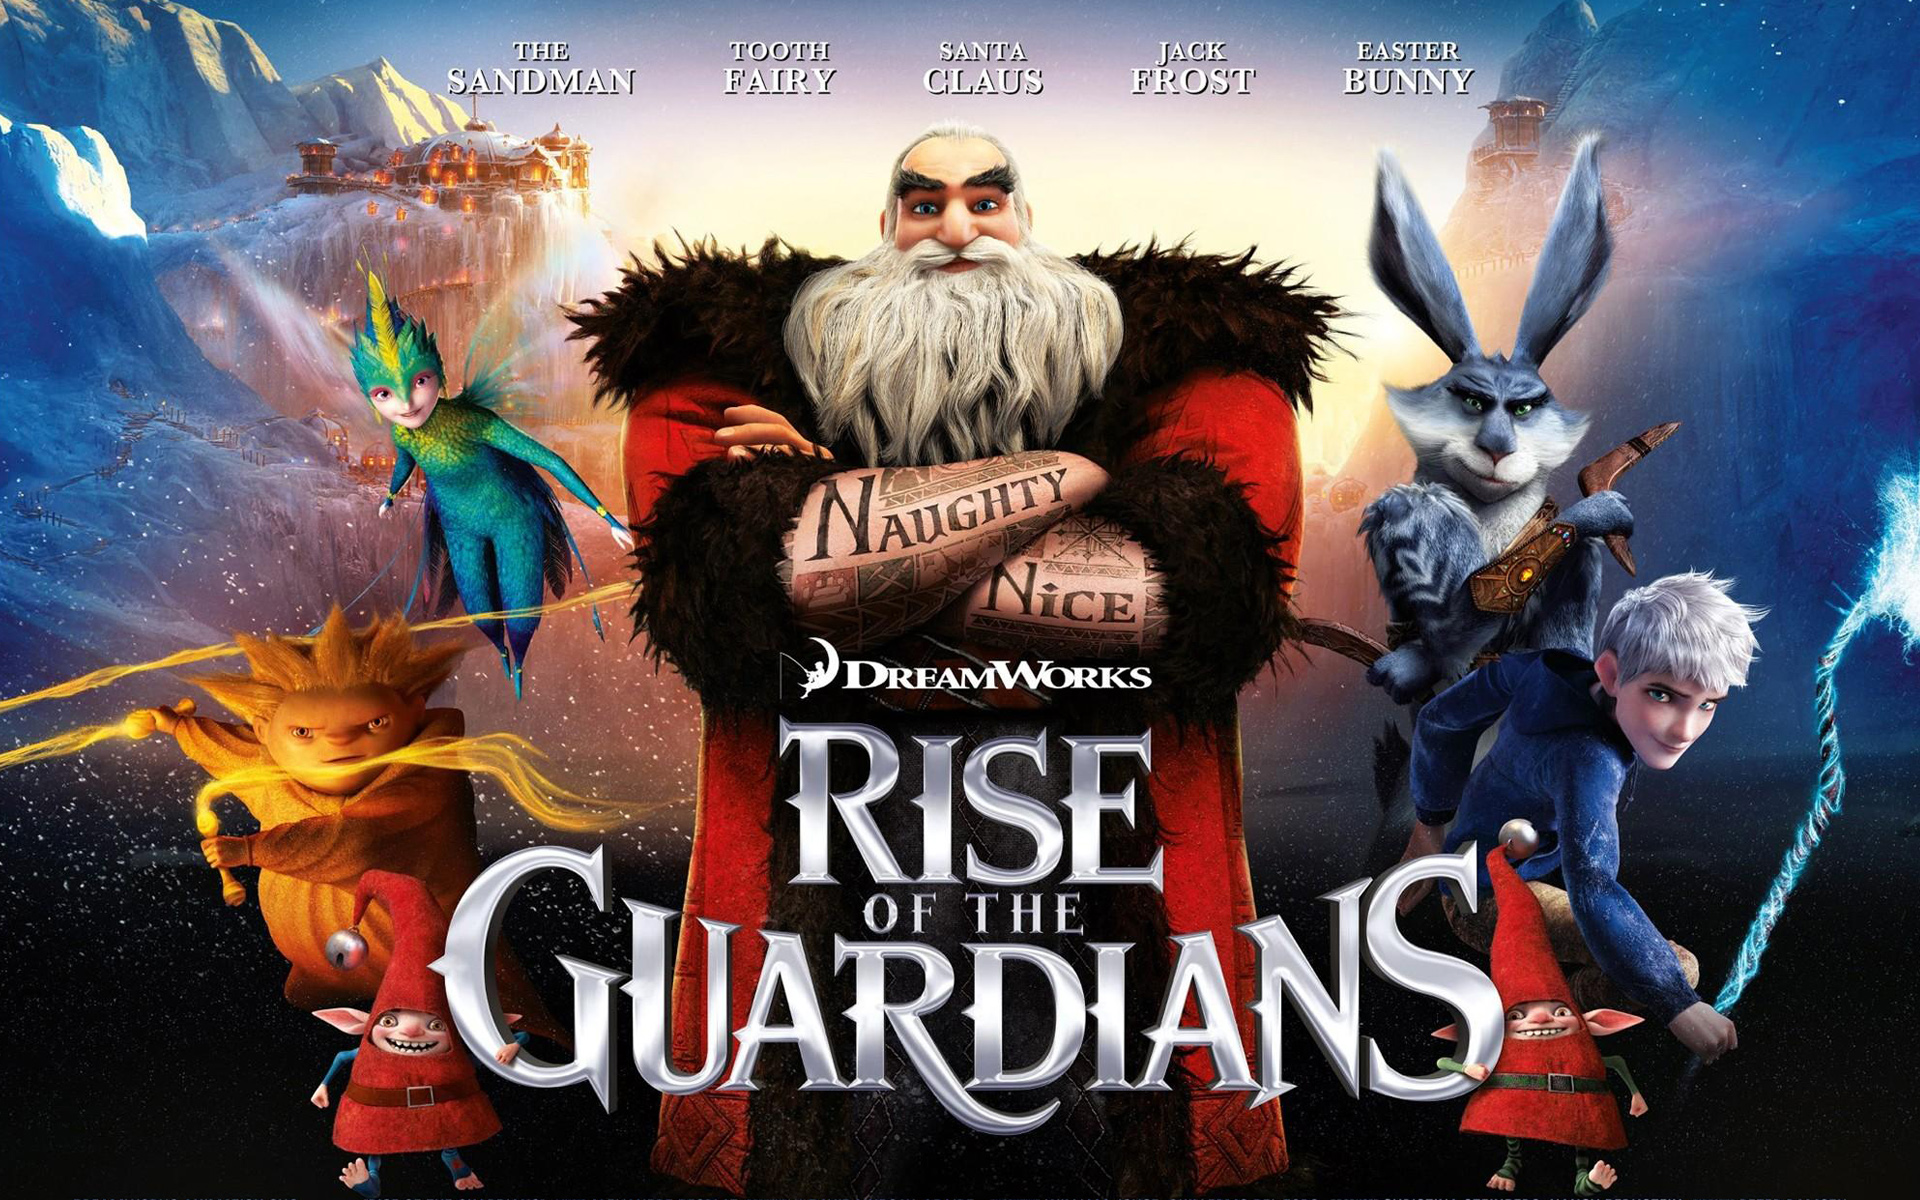 Rise_of_the_guardians_2012_movie-wide.jp